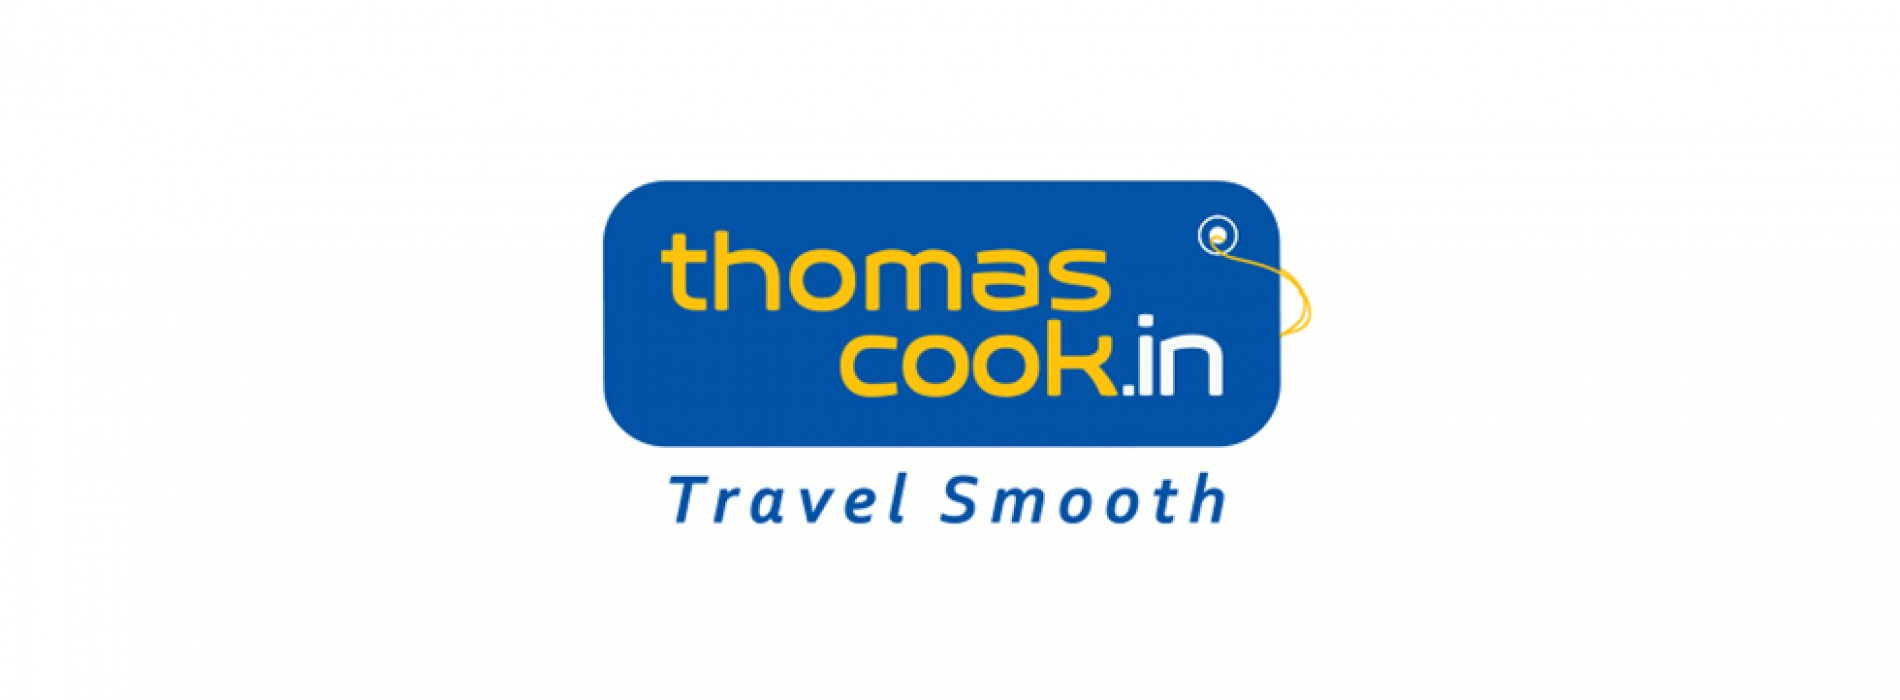 Thomas Cook (India) Ltd. Group announces strong results for the Quarter ended September 30